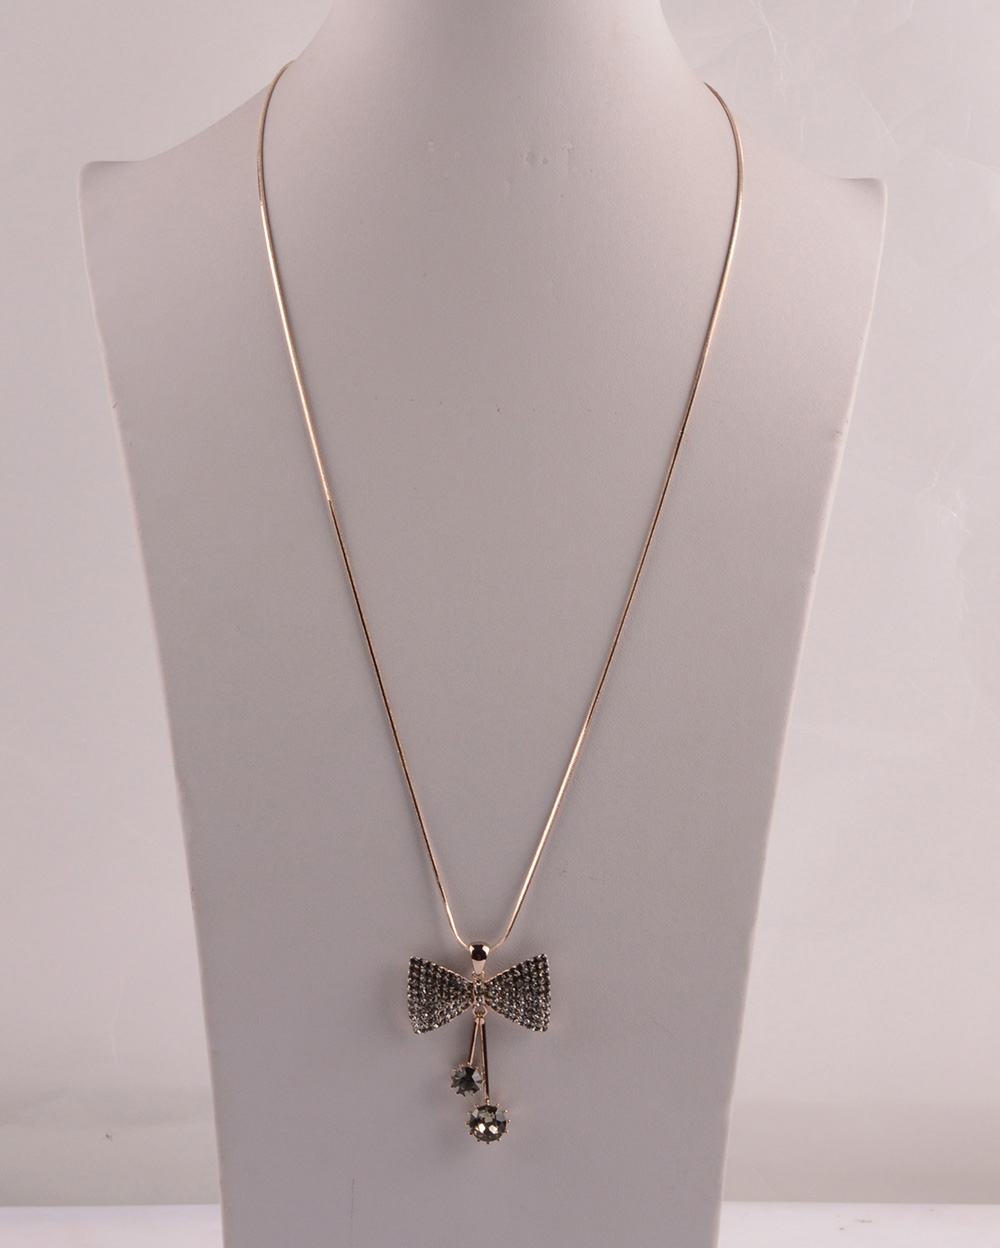 907530 Lady Long Necklace